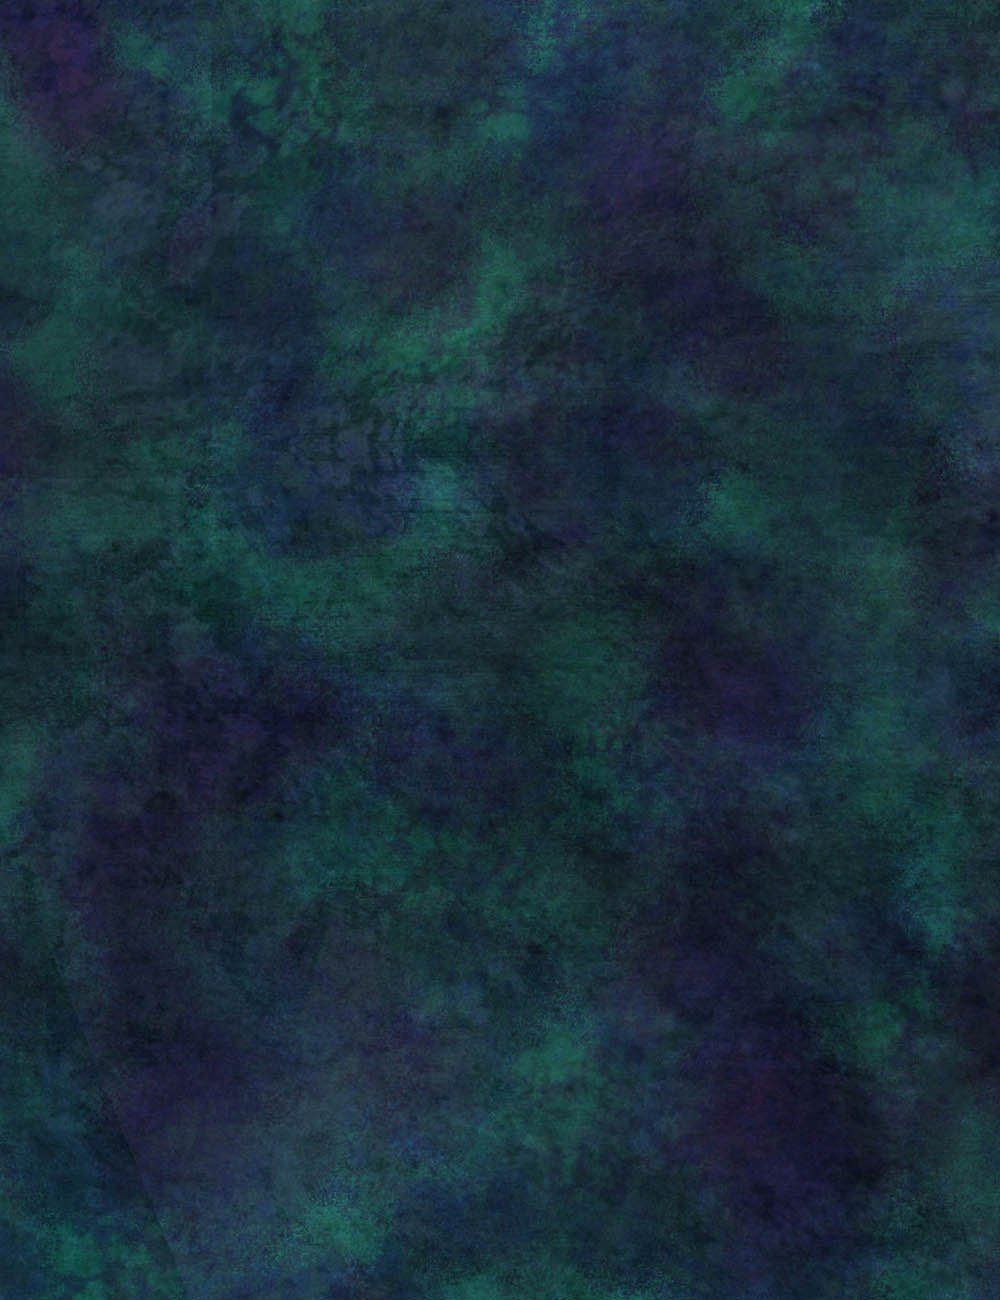 Abstract Green With Blue Purple Texture Photography Backdrop J-0655 - Shop Backdrop